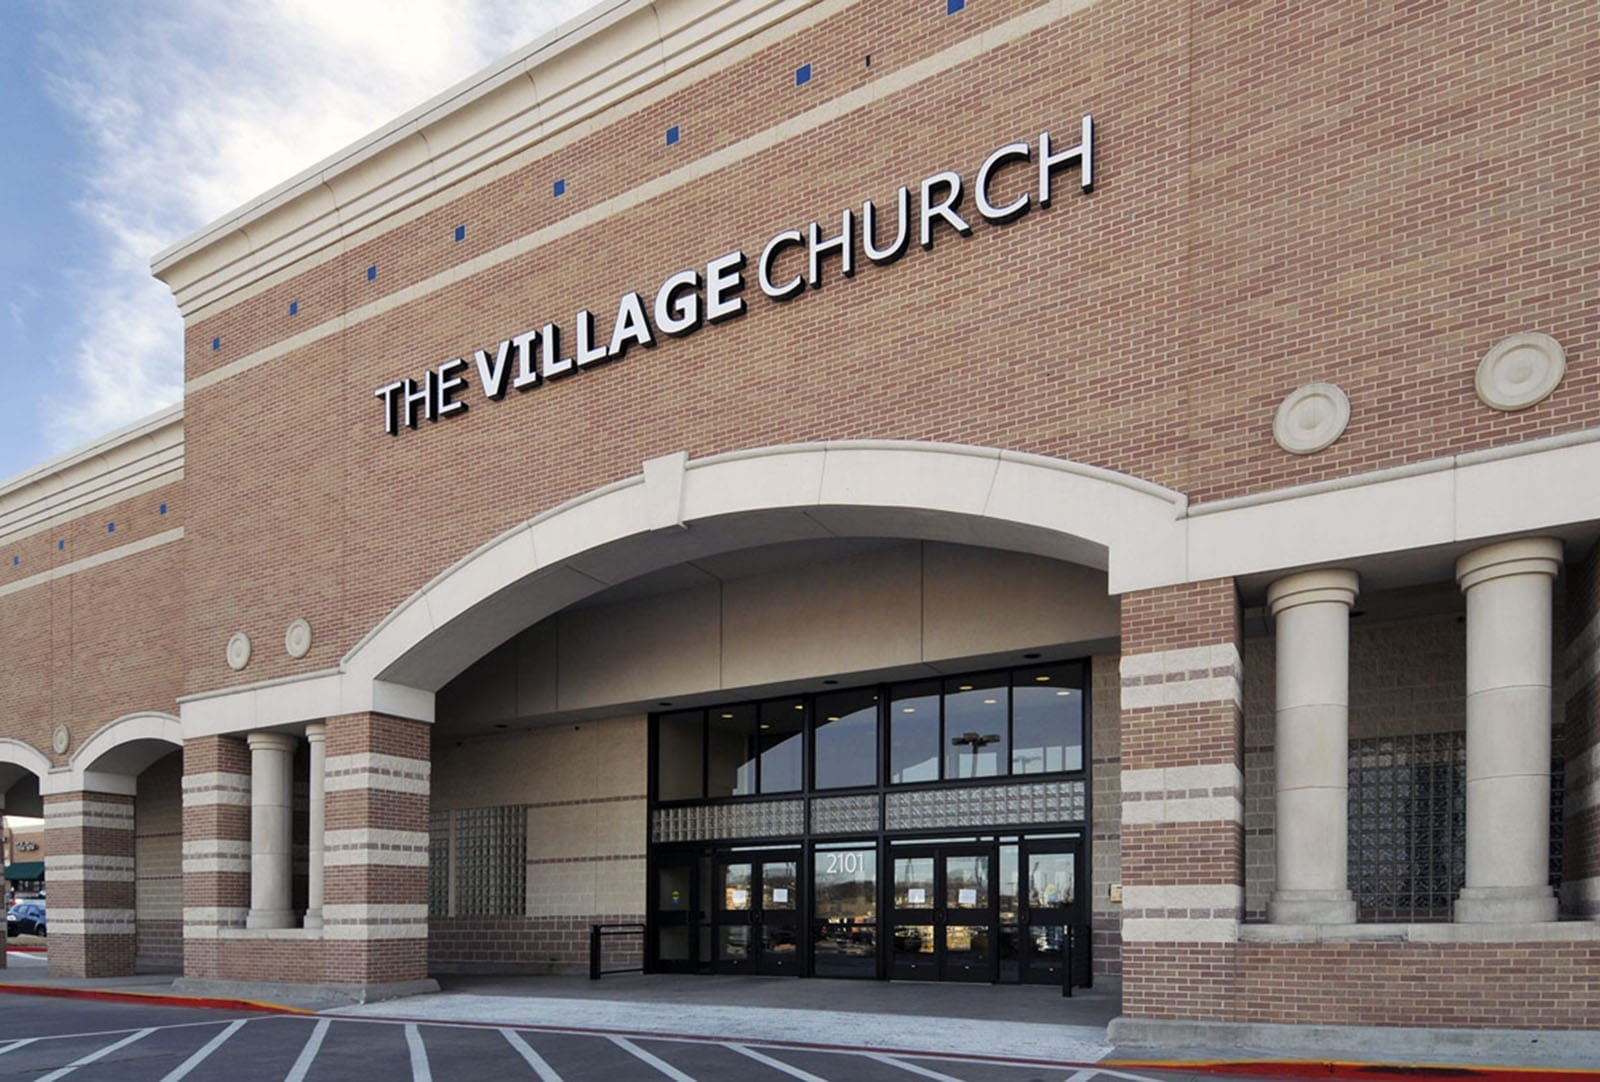 Village Church in Flower Mound